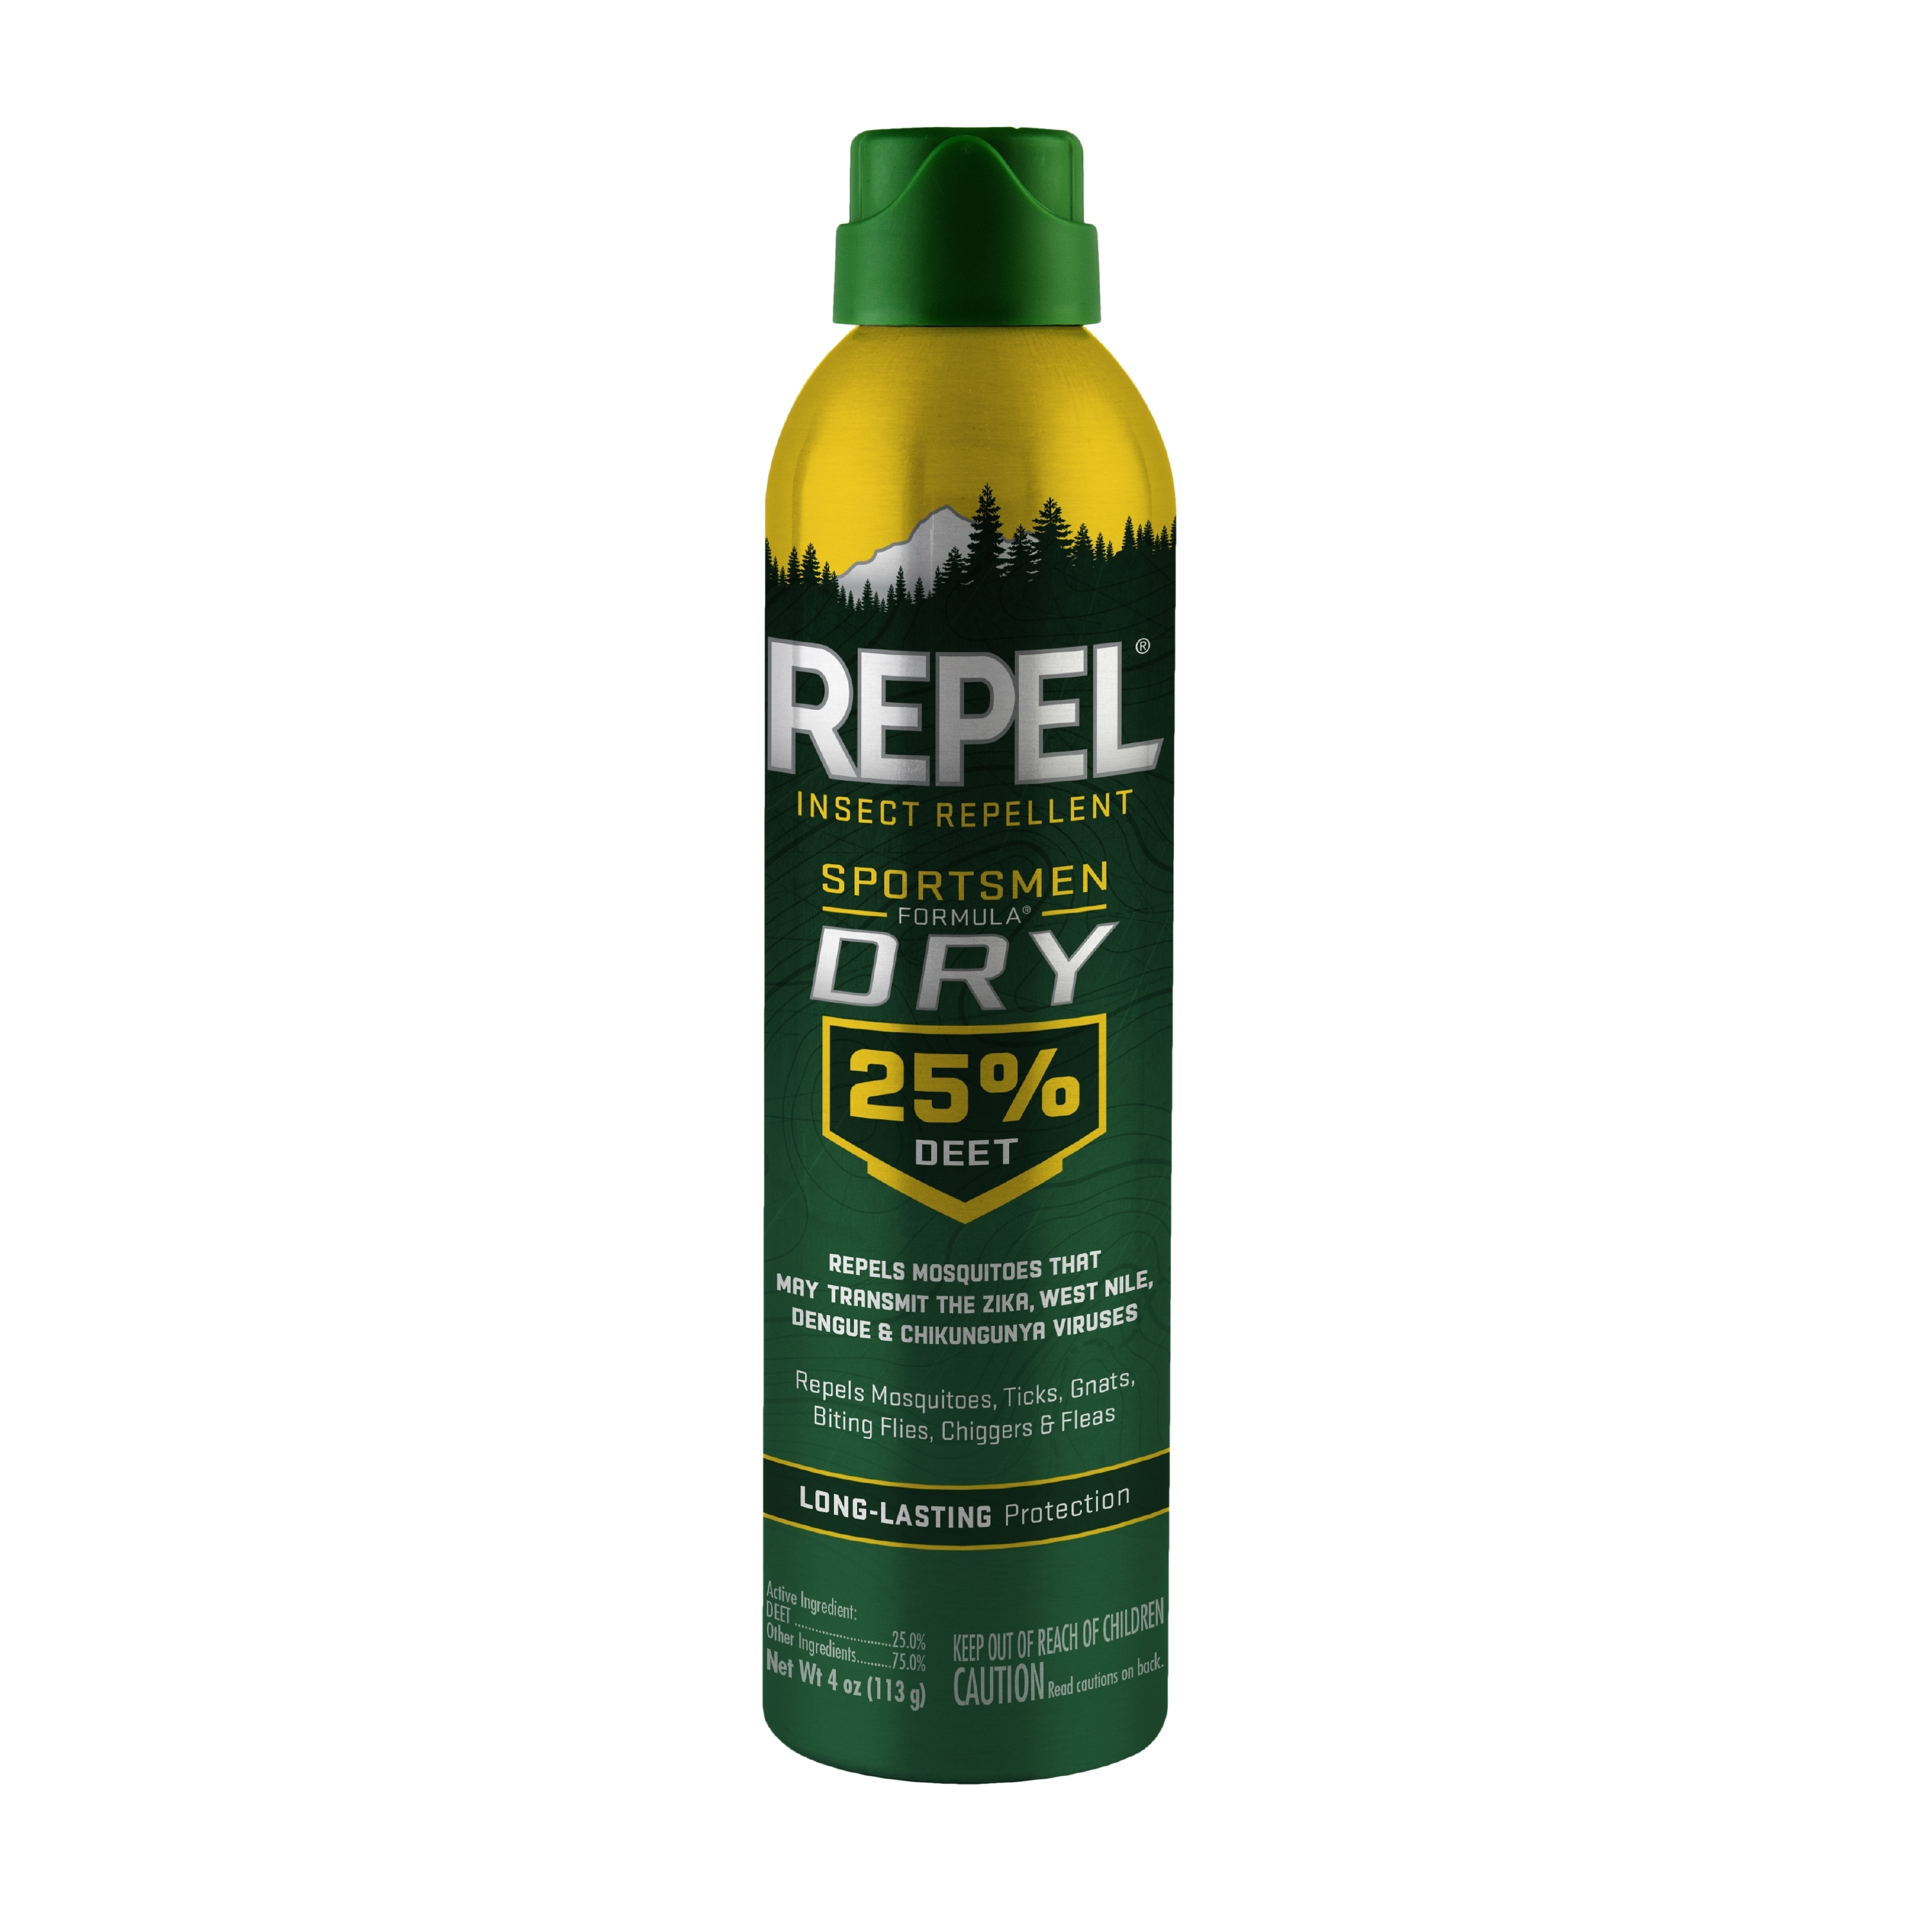 Repel Insect Repellent Sportsmen Formula Dry 25% DEET, 4-oz